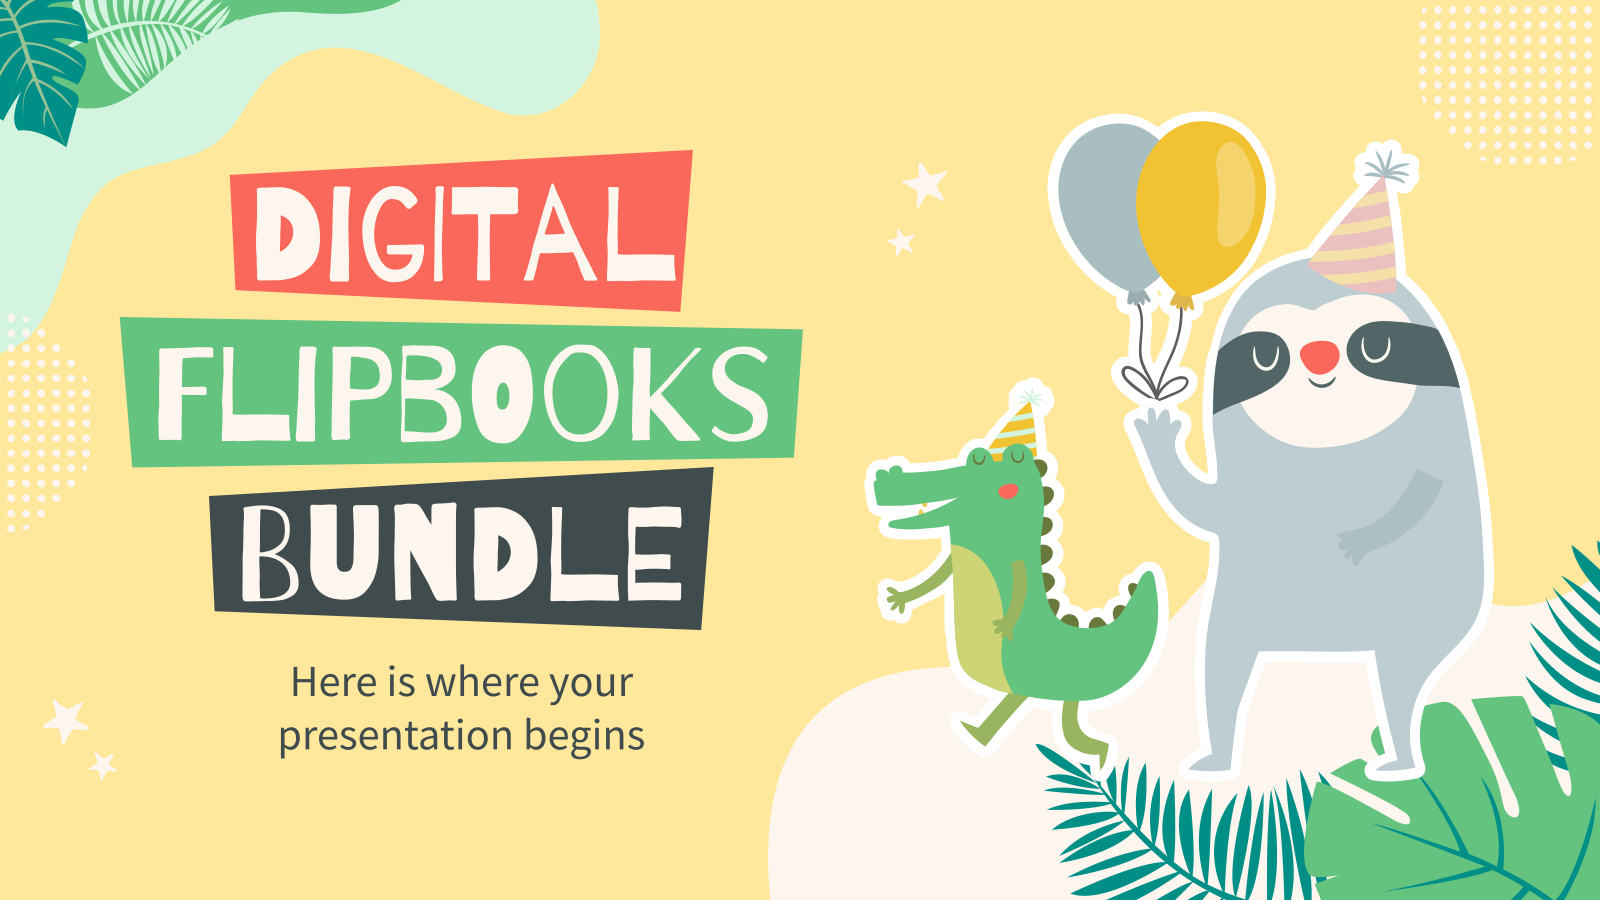 Digital Flipbooks Bundle presentation template